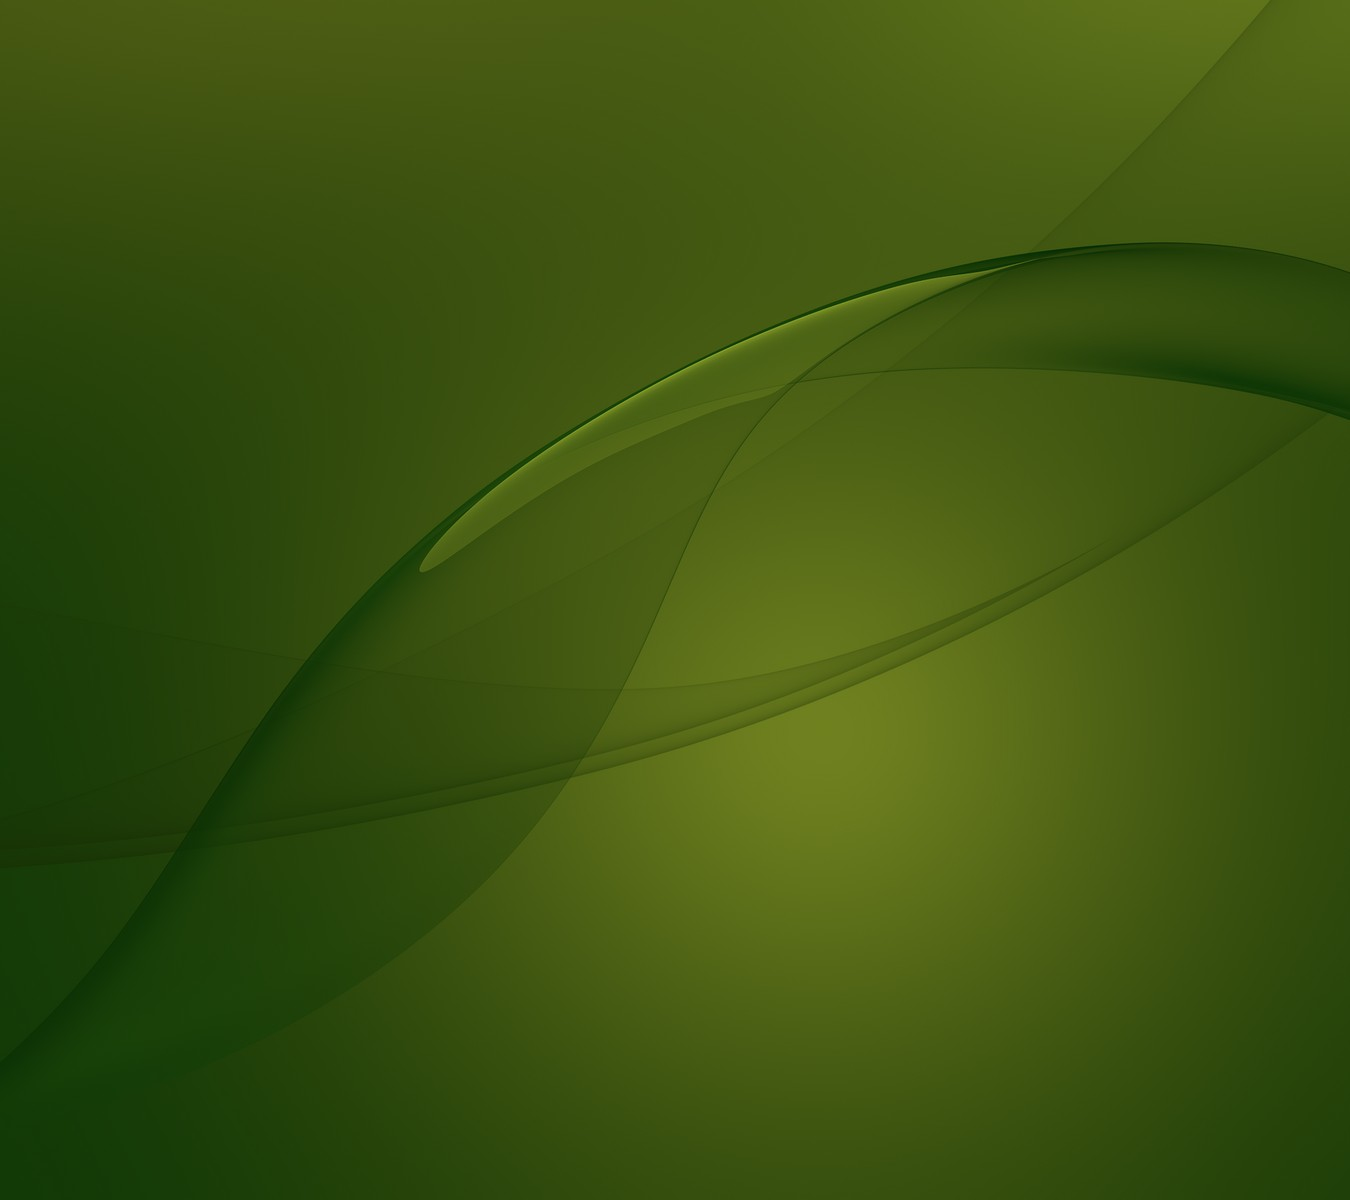 Xperia Wallpapers - WallpaperSafari